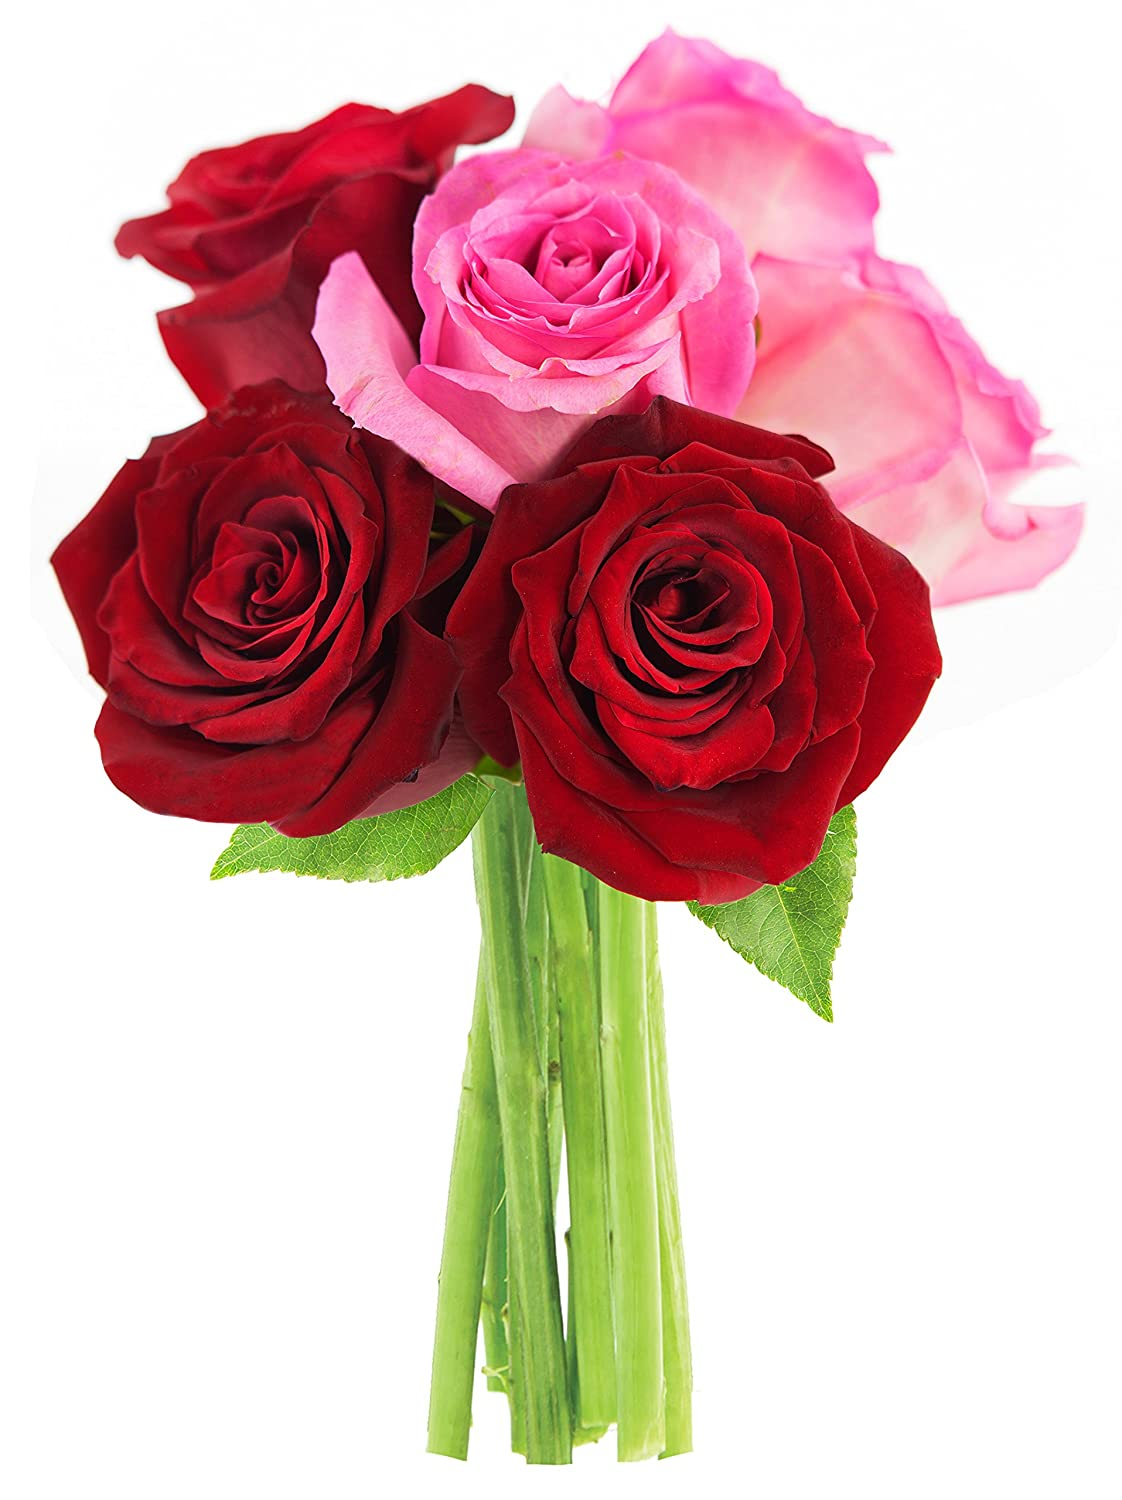 Amazon.com : Bouquet of Long Stemmed Red and Pink Roses (Half Dozen ...